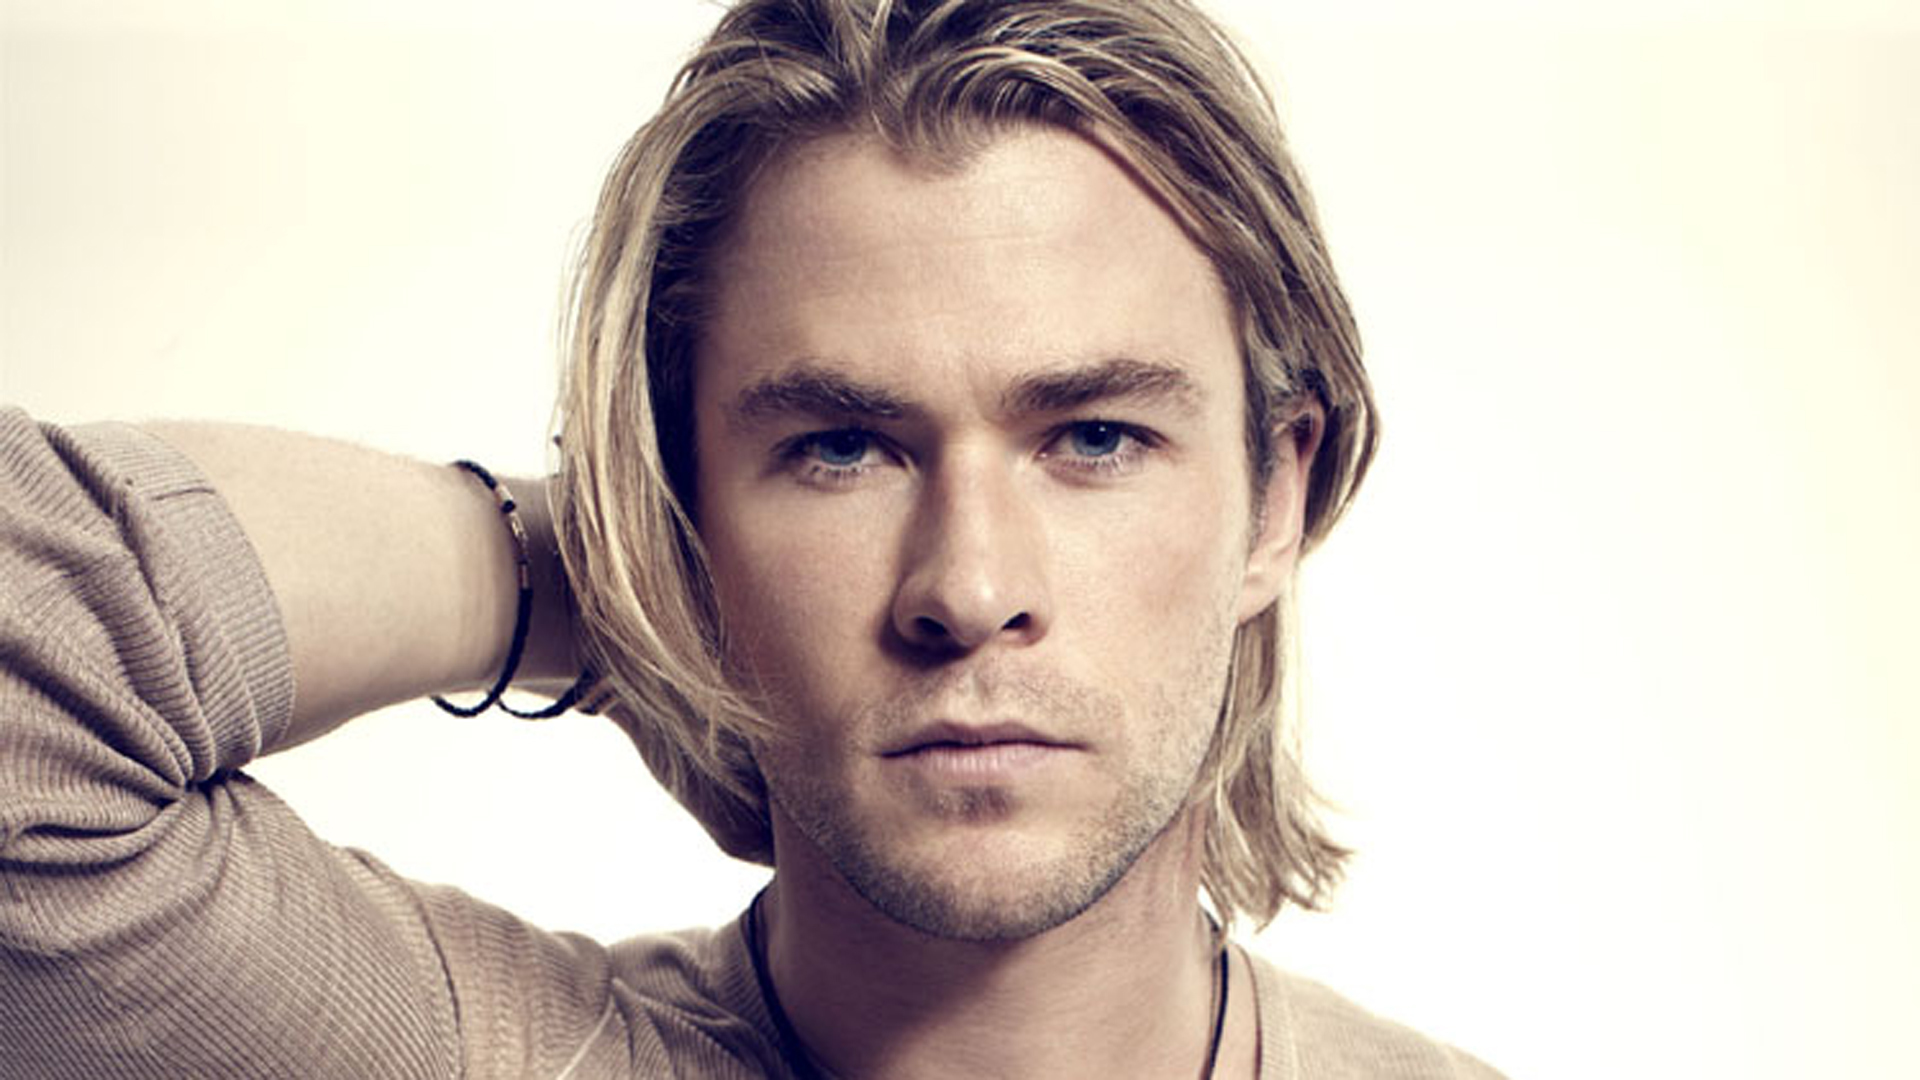 Chris Hemsworth Wallpapers Images Photos Pictures Backgrounds 1920x1080